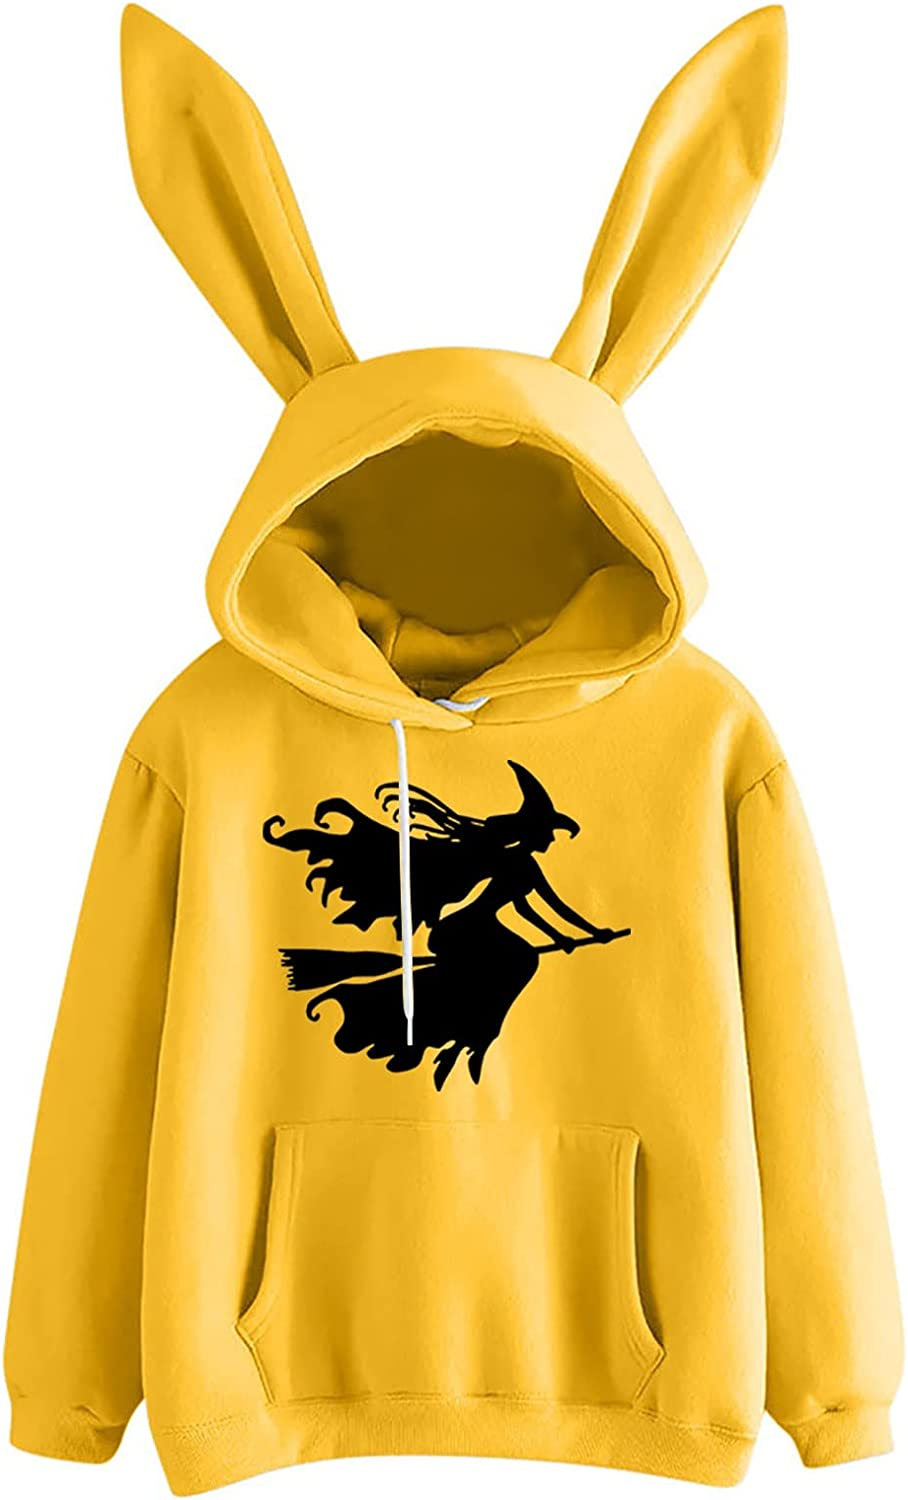 Women's Fashion Cosplay Rabbit Hoodie Print Long Sweater New sales Sleeve In a popularity